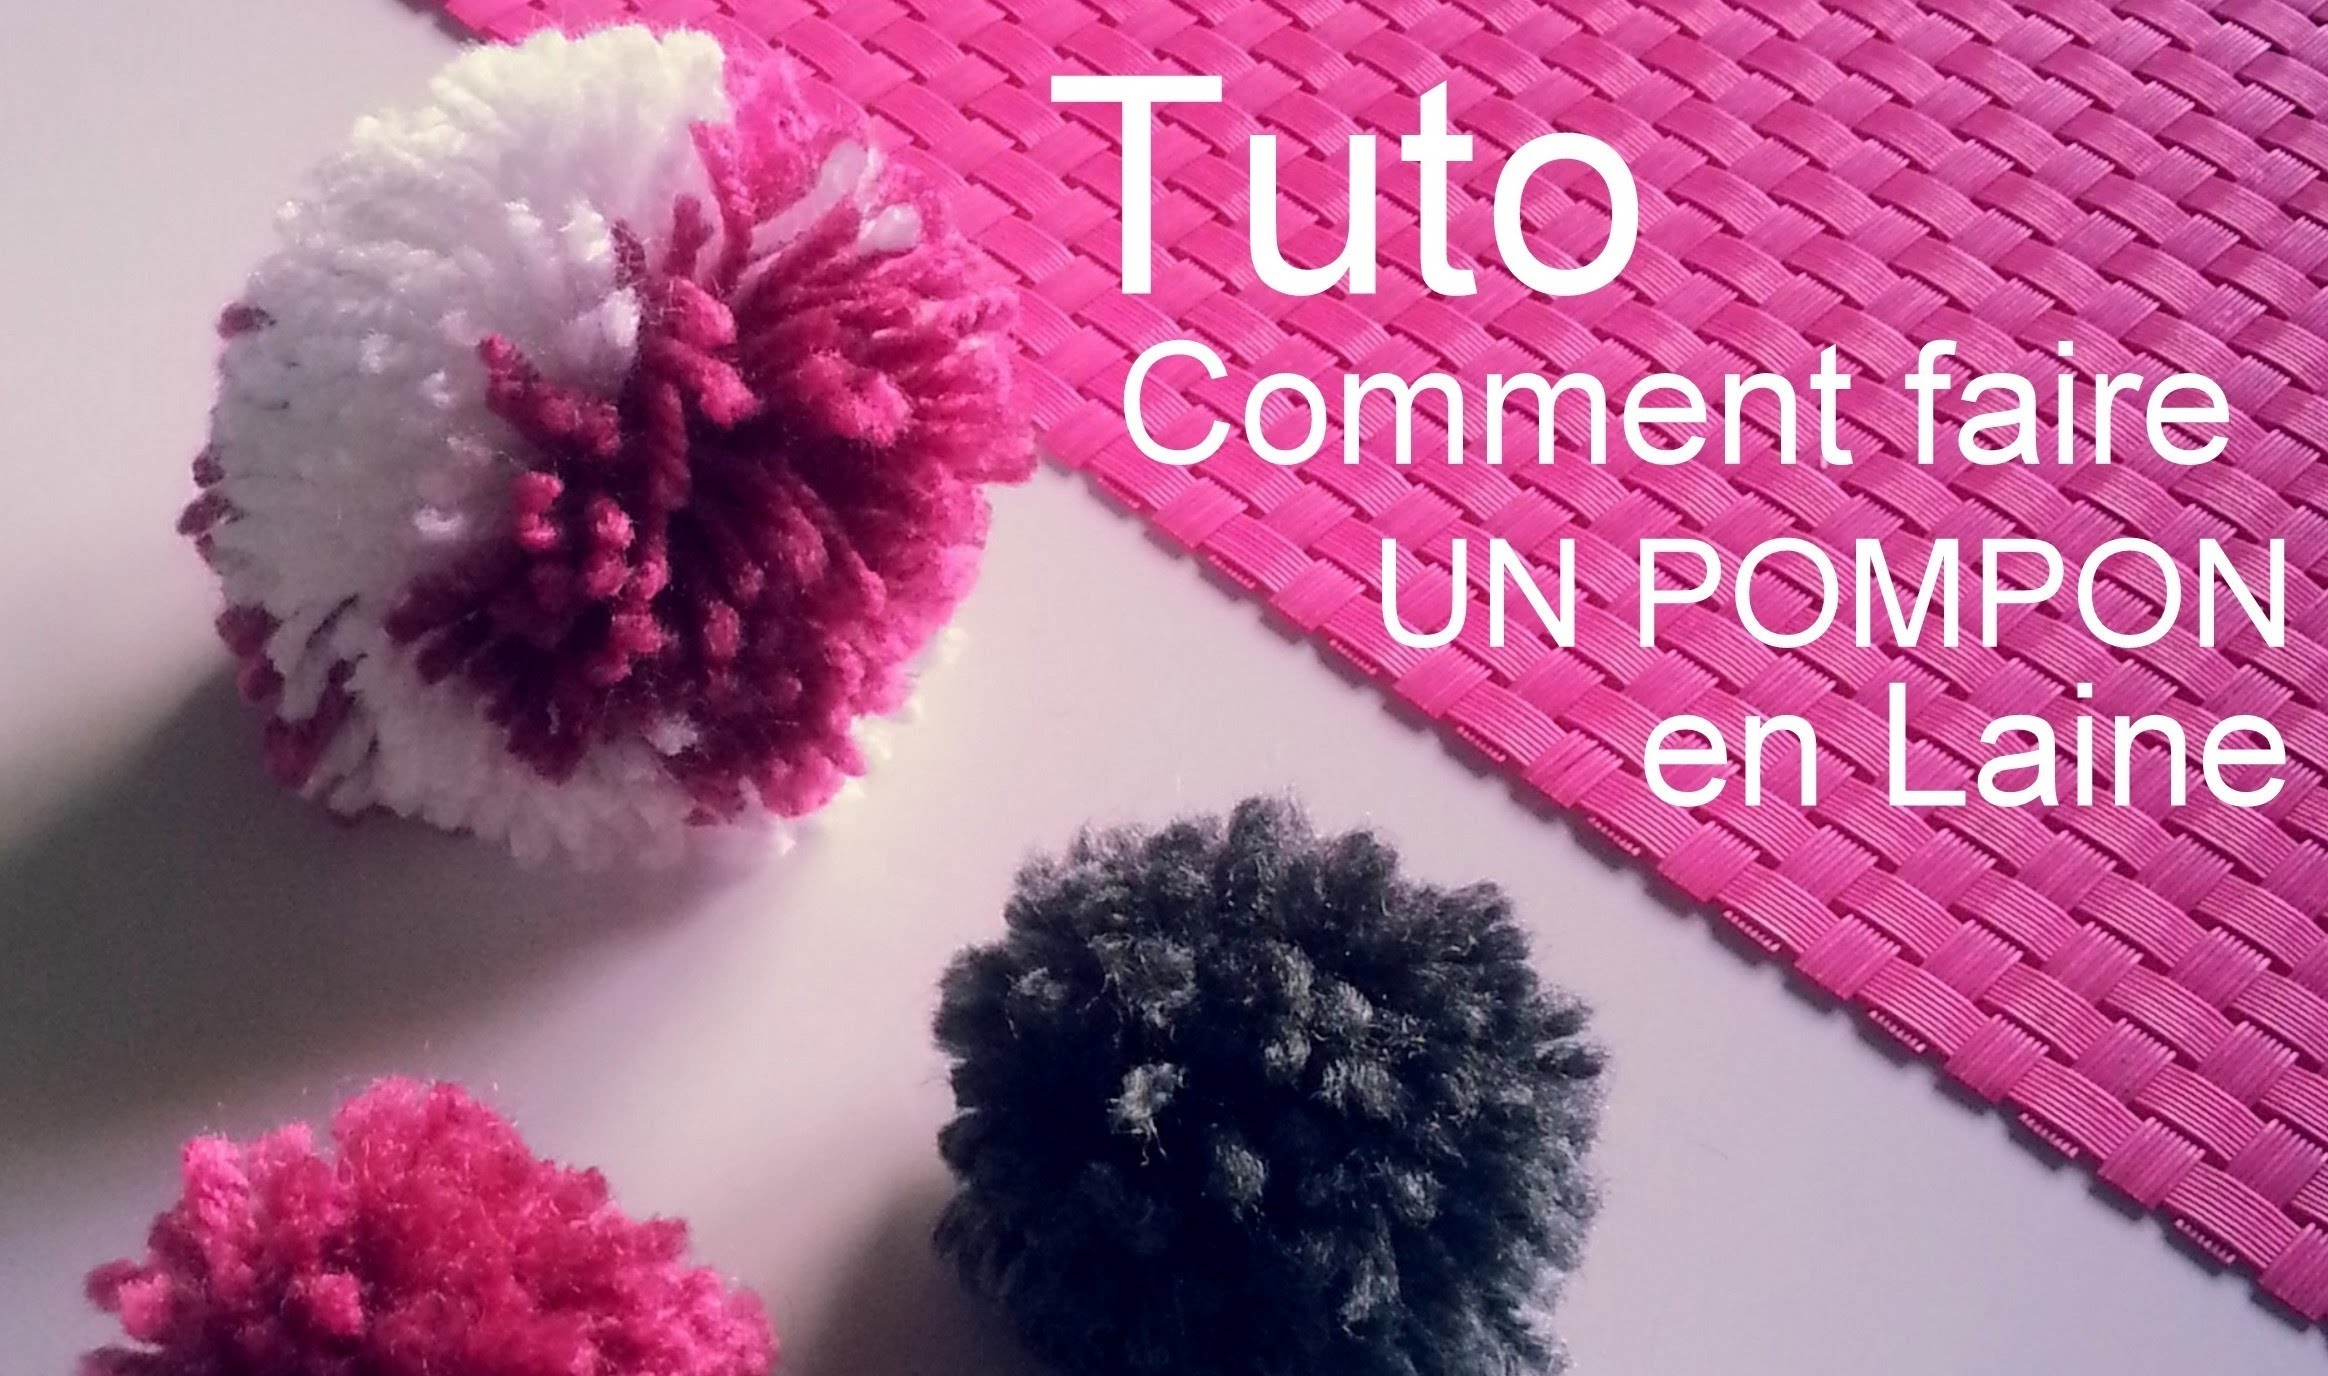 tuto en vid o comment faire un pompon en laine astuces bricolage. Black Bedroom Furniture Sets. Home Design Ideas